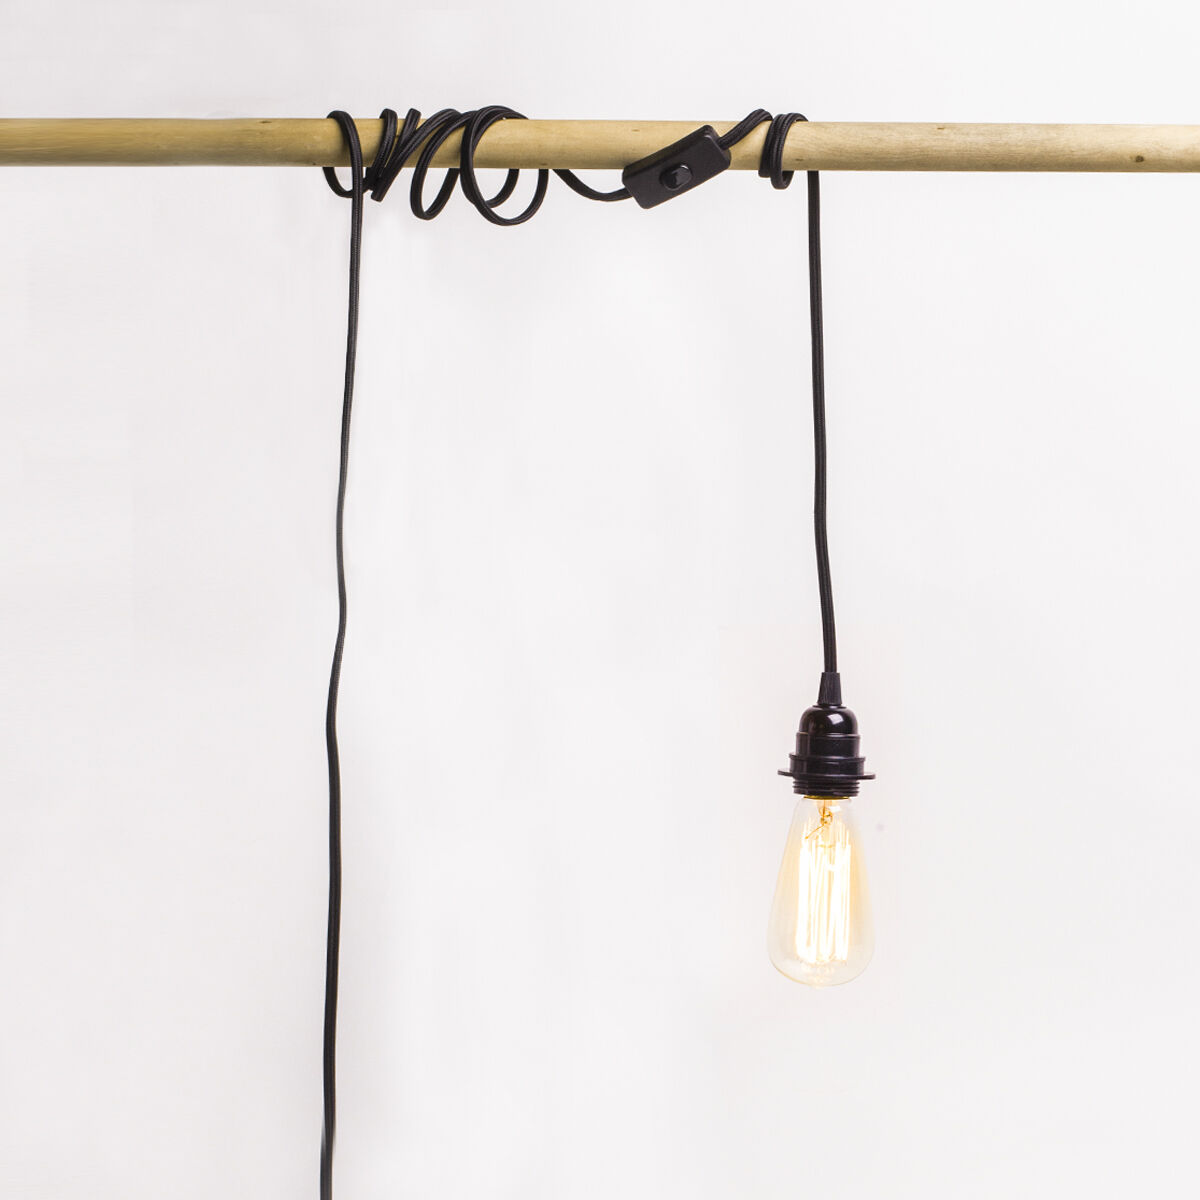 5m plug in hanging lantern cord pendant light edison bulb lamp. Black Bedroom Furniture Sets. Home Design Ideas